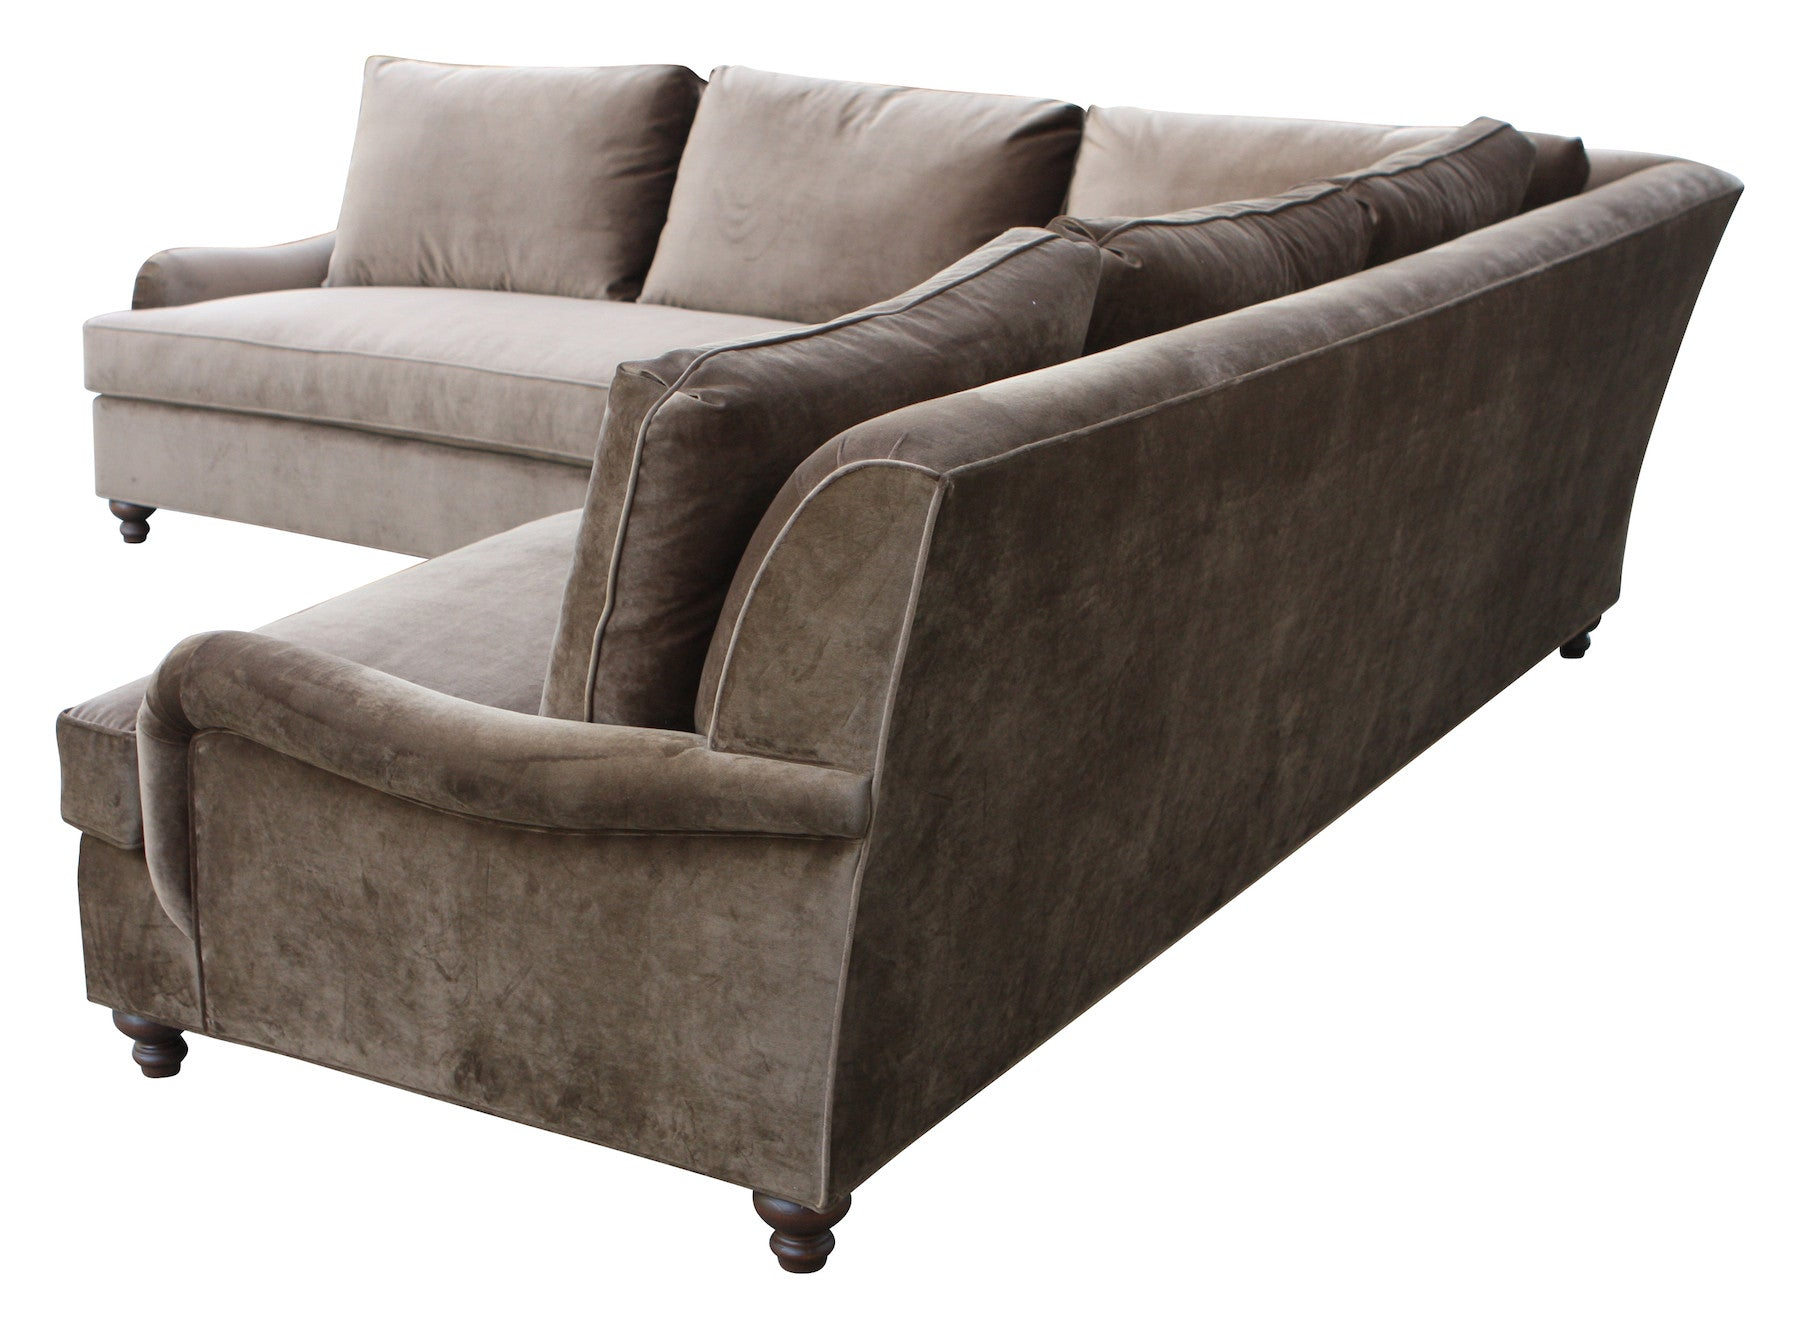 English Rolled Arm Sectional And Sofas Custom Made In Our Los Angeles Bench Made Home Furnshings Since 1989 Mortise Tenon